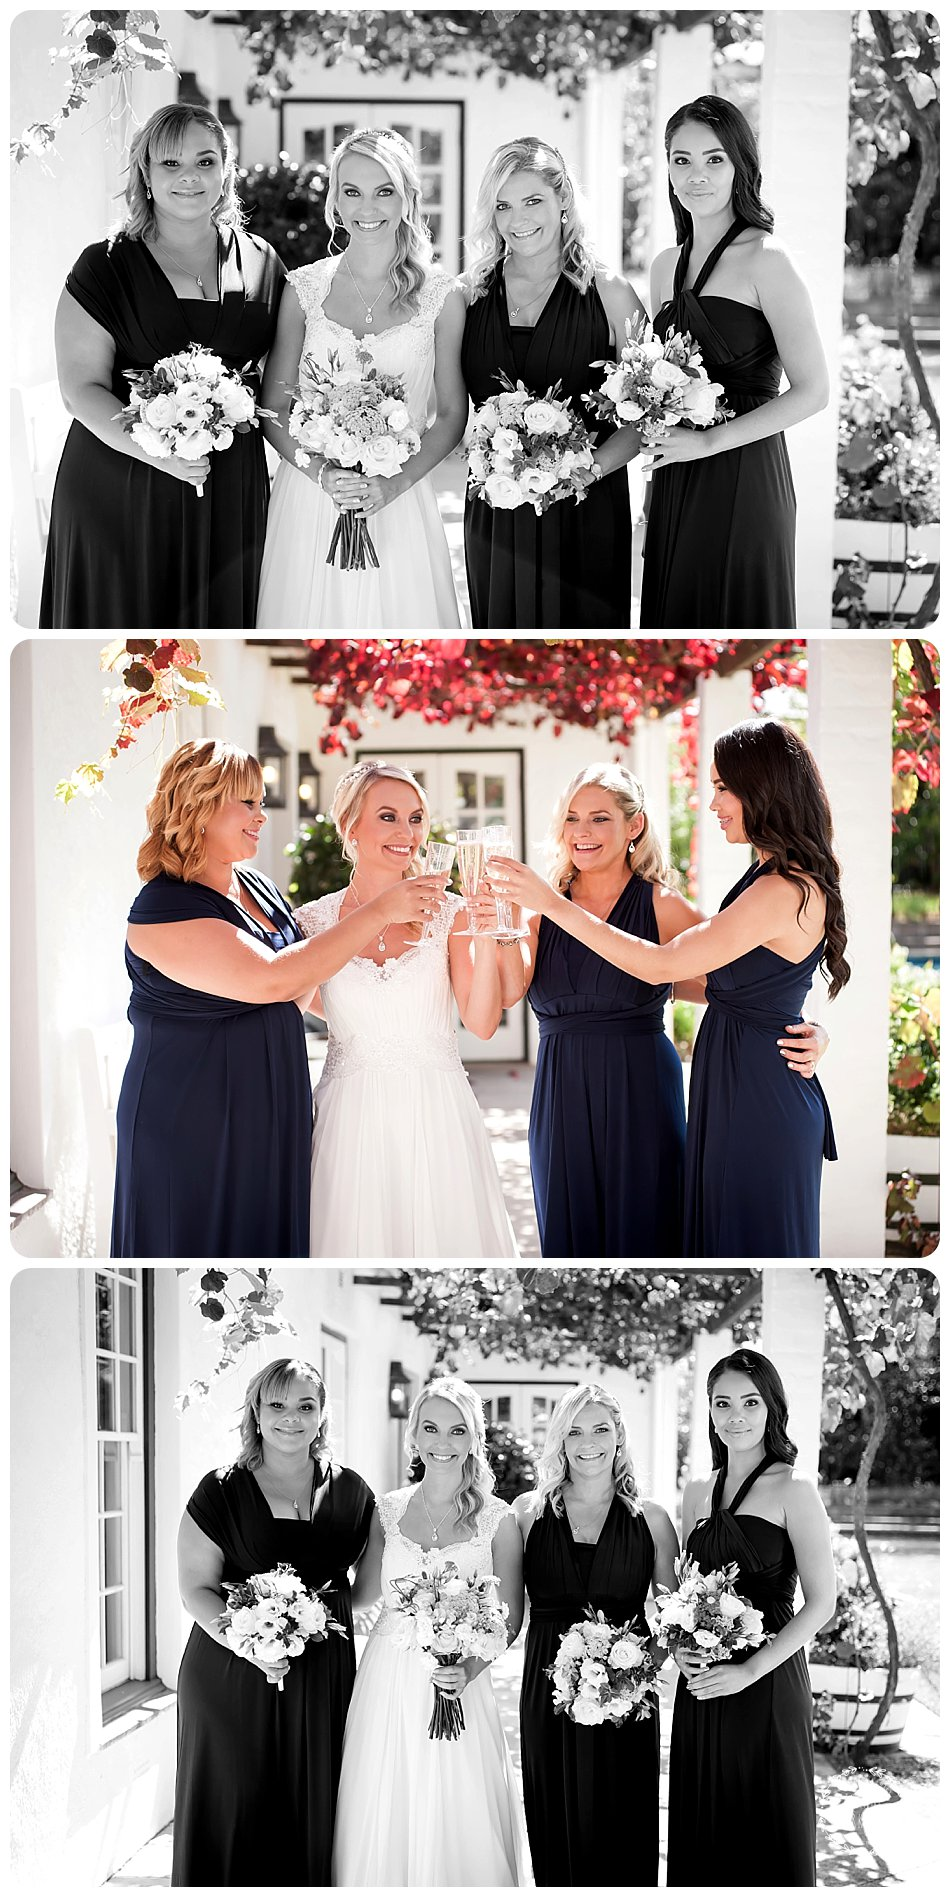 Steenberg_wedding_cape_town_photography_joanne_markland_photographer-019